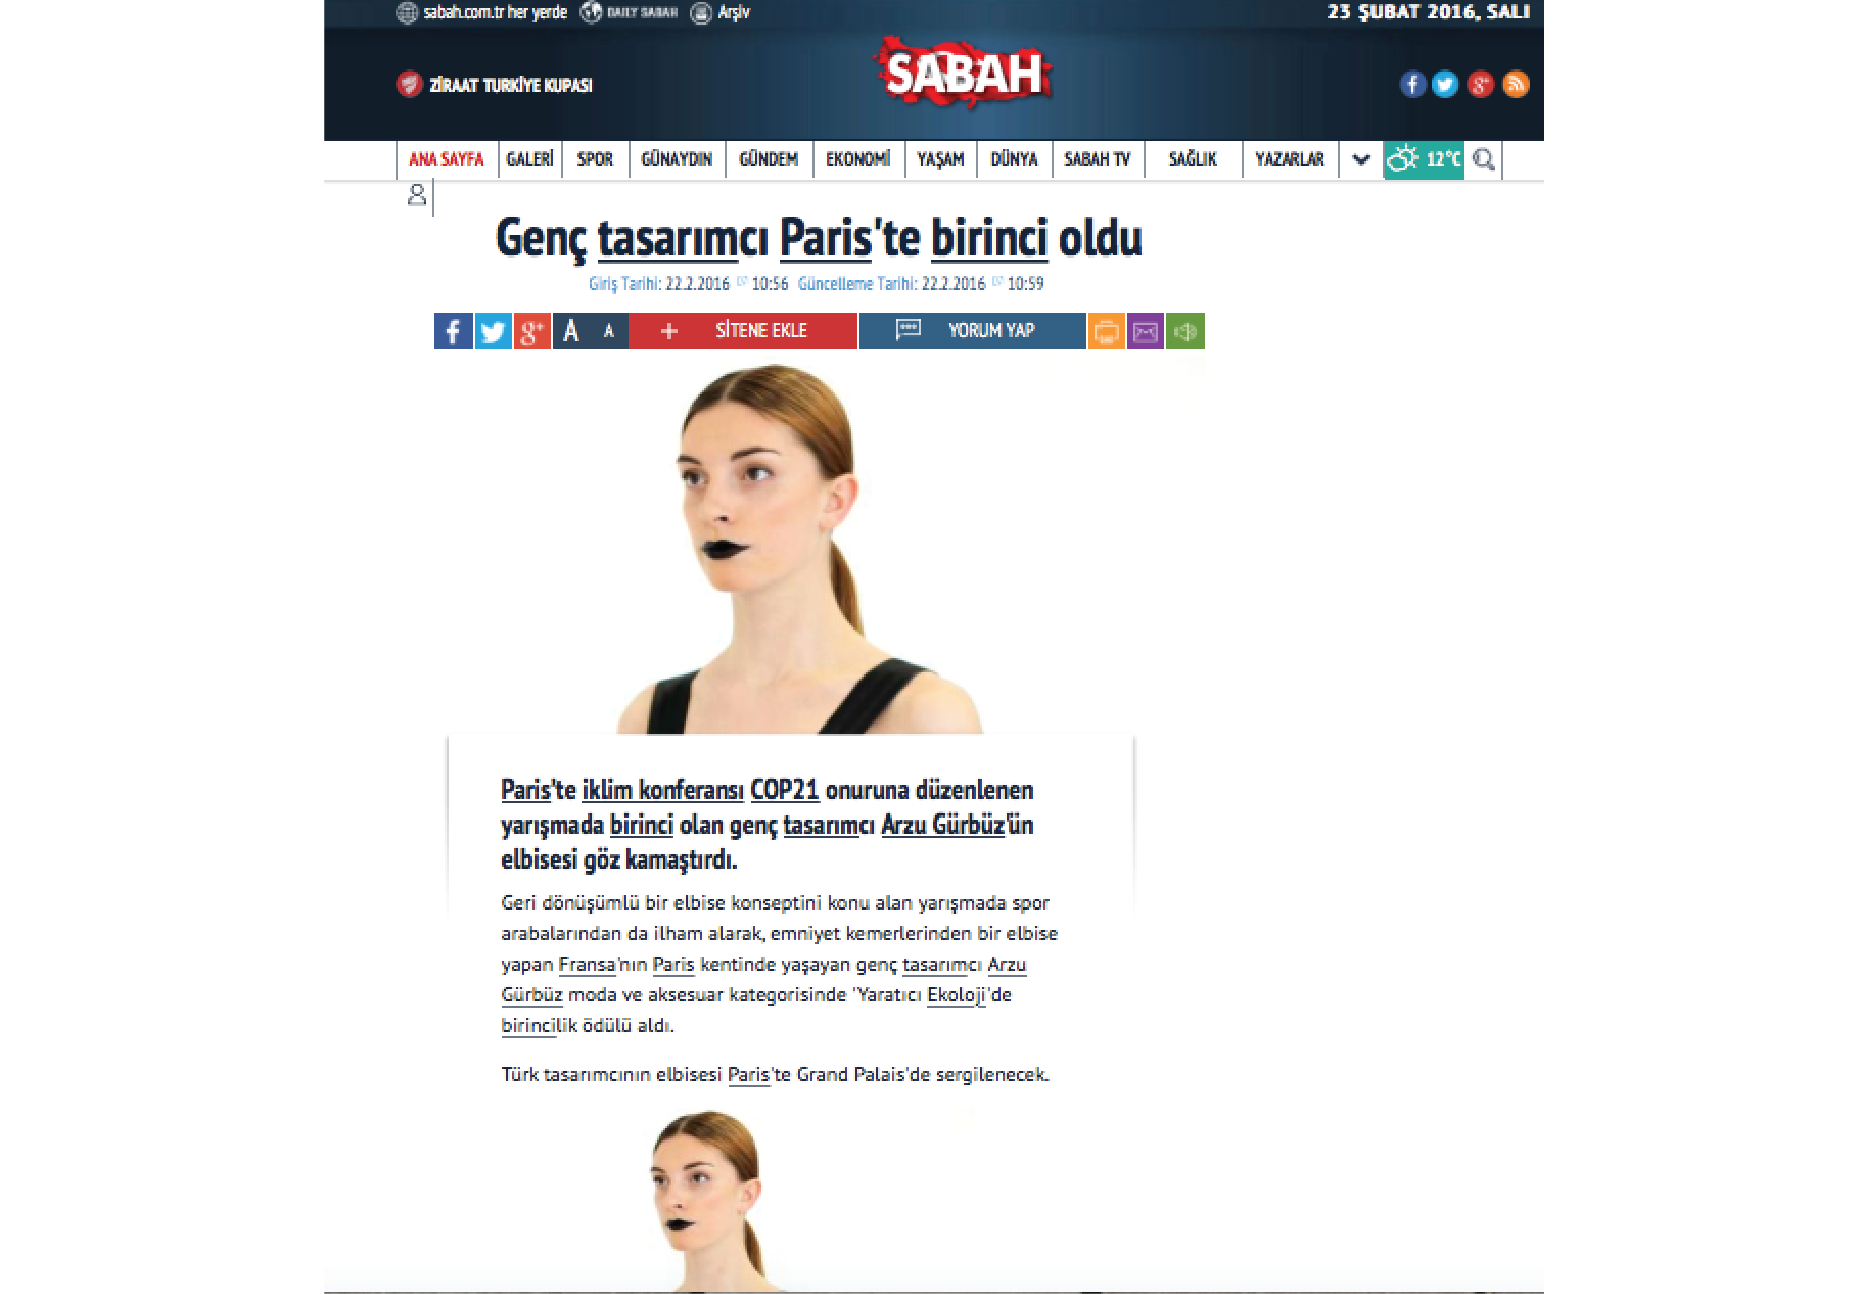 Publication in Turkish Newspaper, Sabah